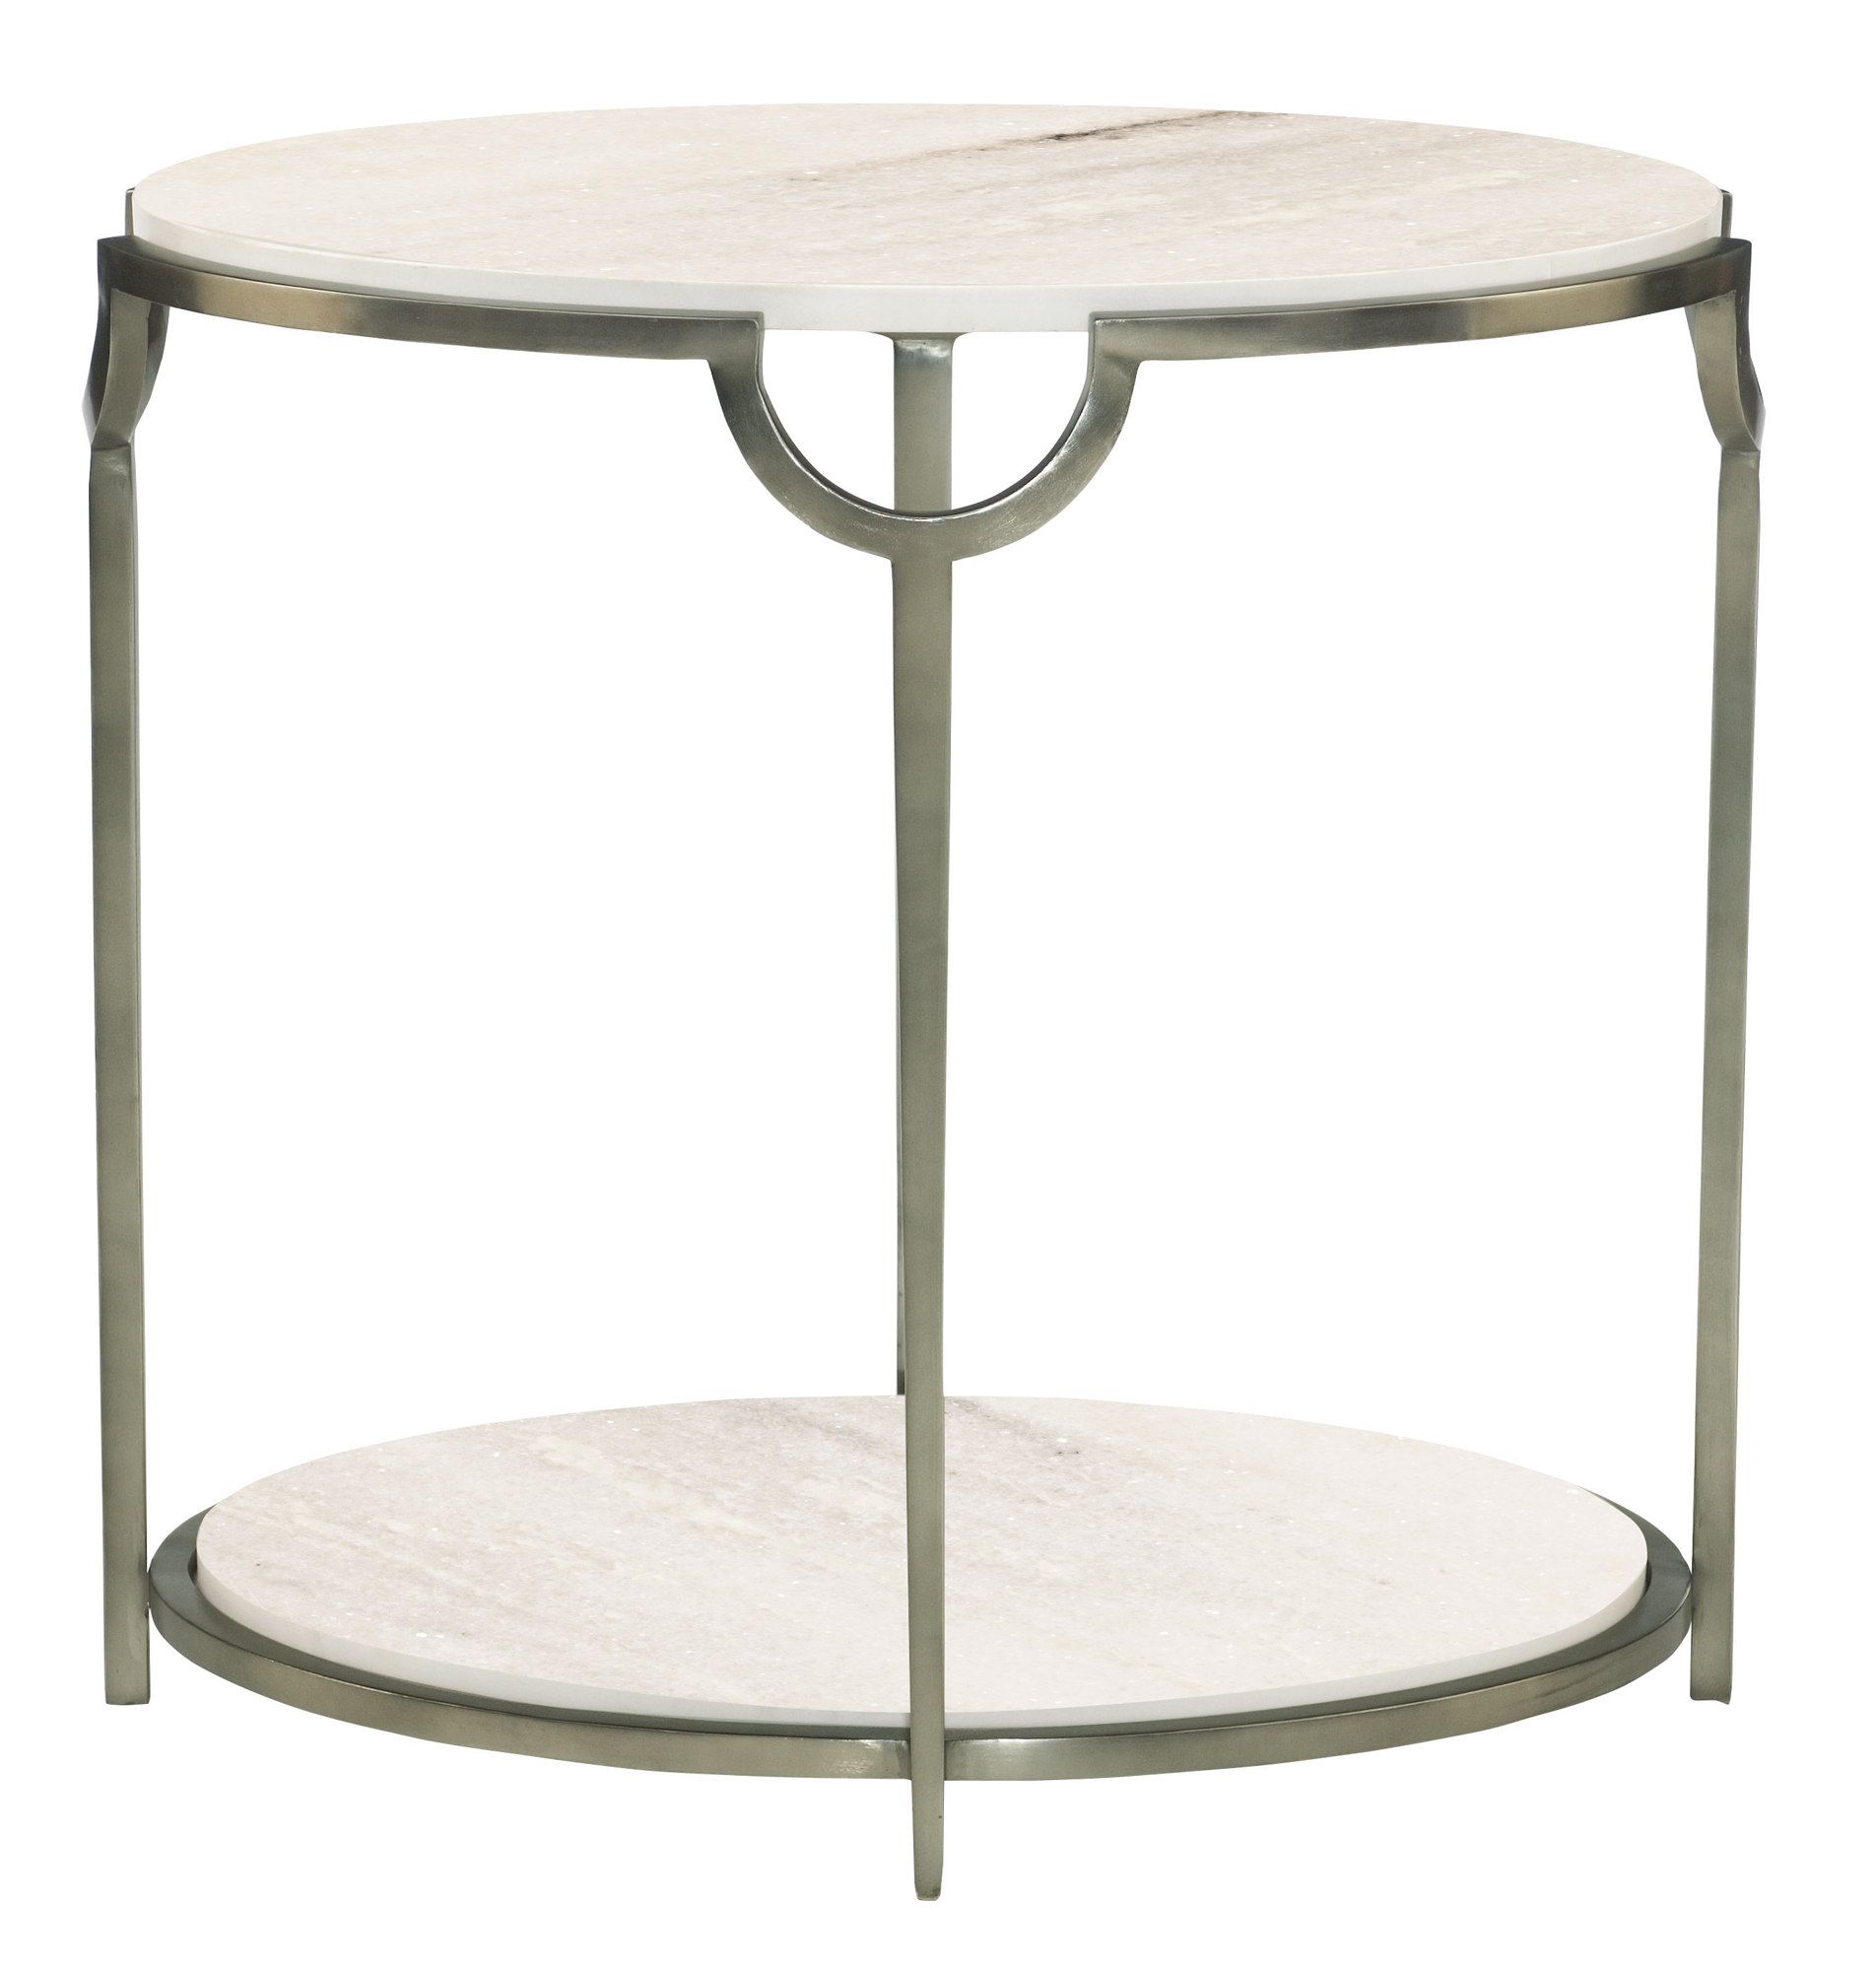 oval metal end table bernhardt simplify accent marble dinner set squares linens modern lounge harveys bedroom furniture lighting lamps checkerboard decorative accessories for